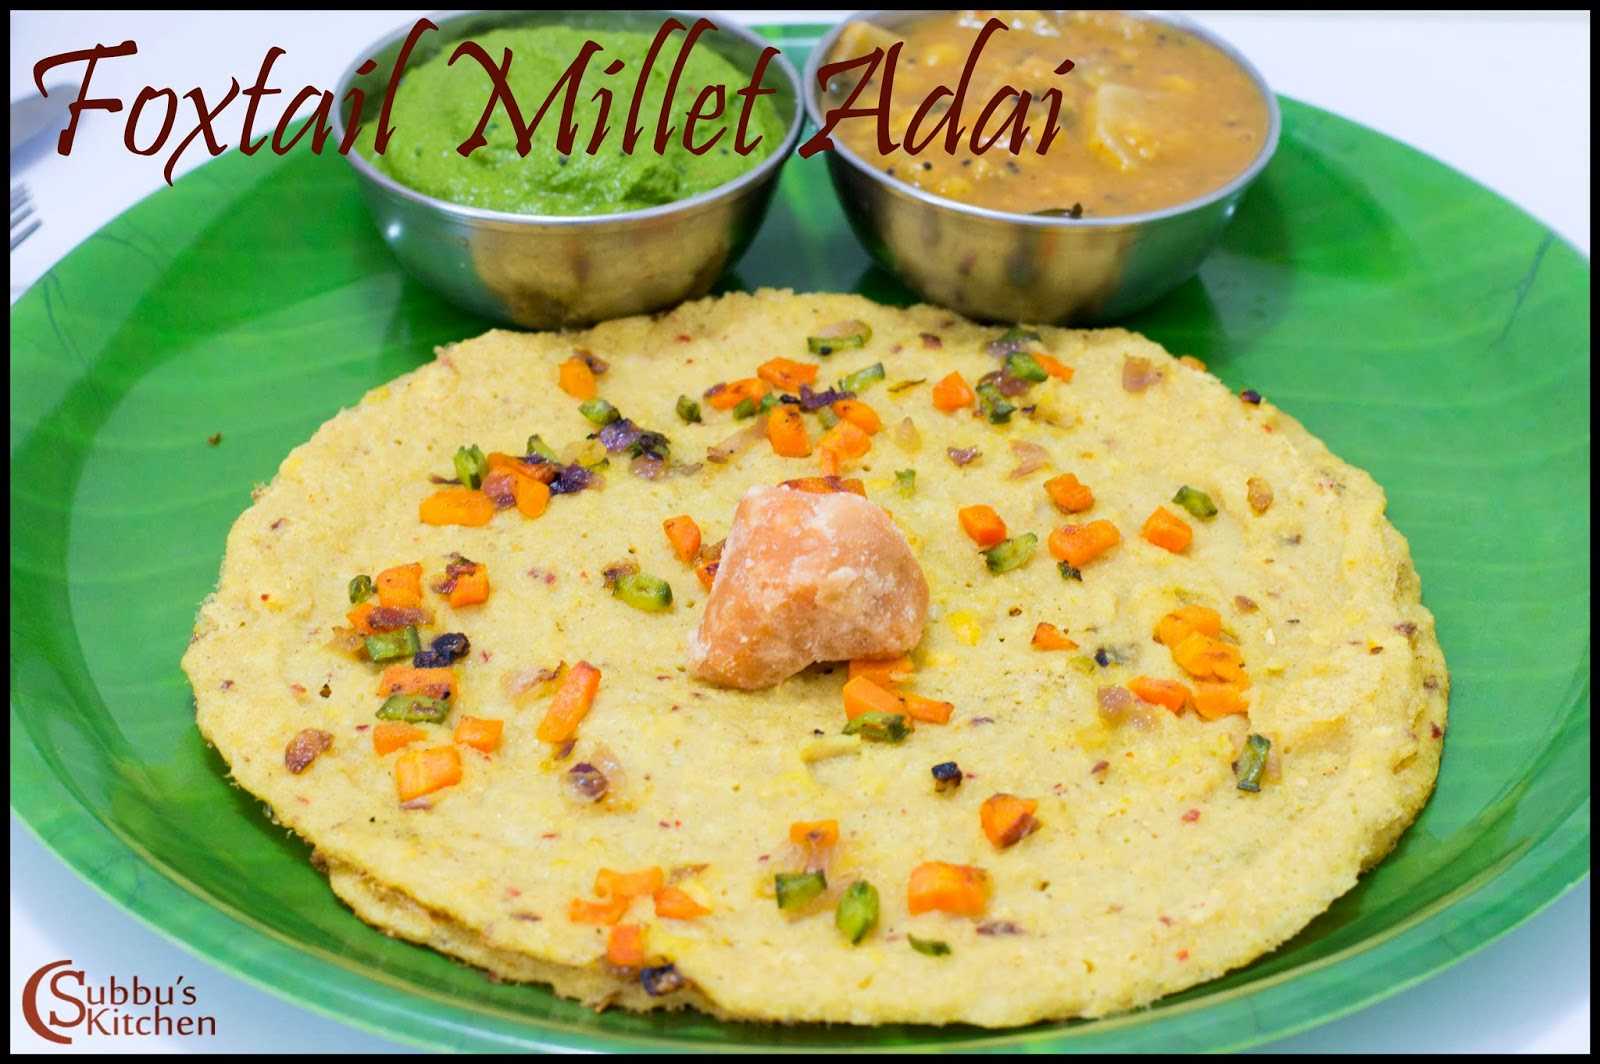 Thinai Vegetable Adai Recipe | Foxtail Millet Vegetable  Adai Recipe